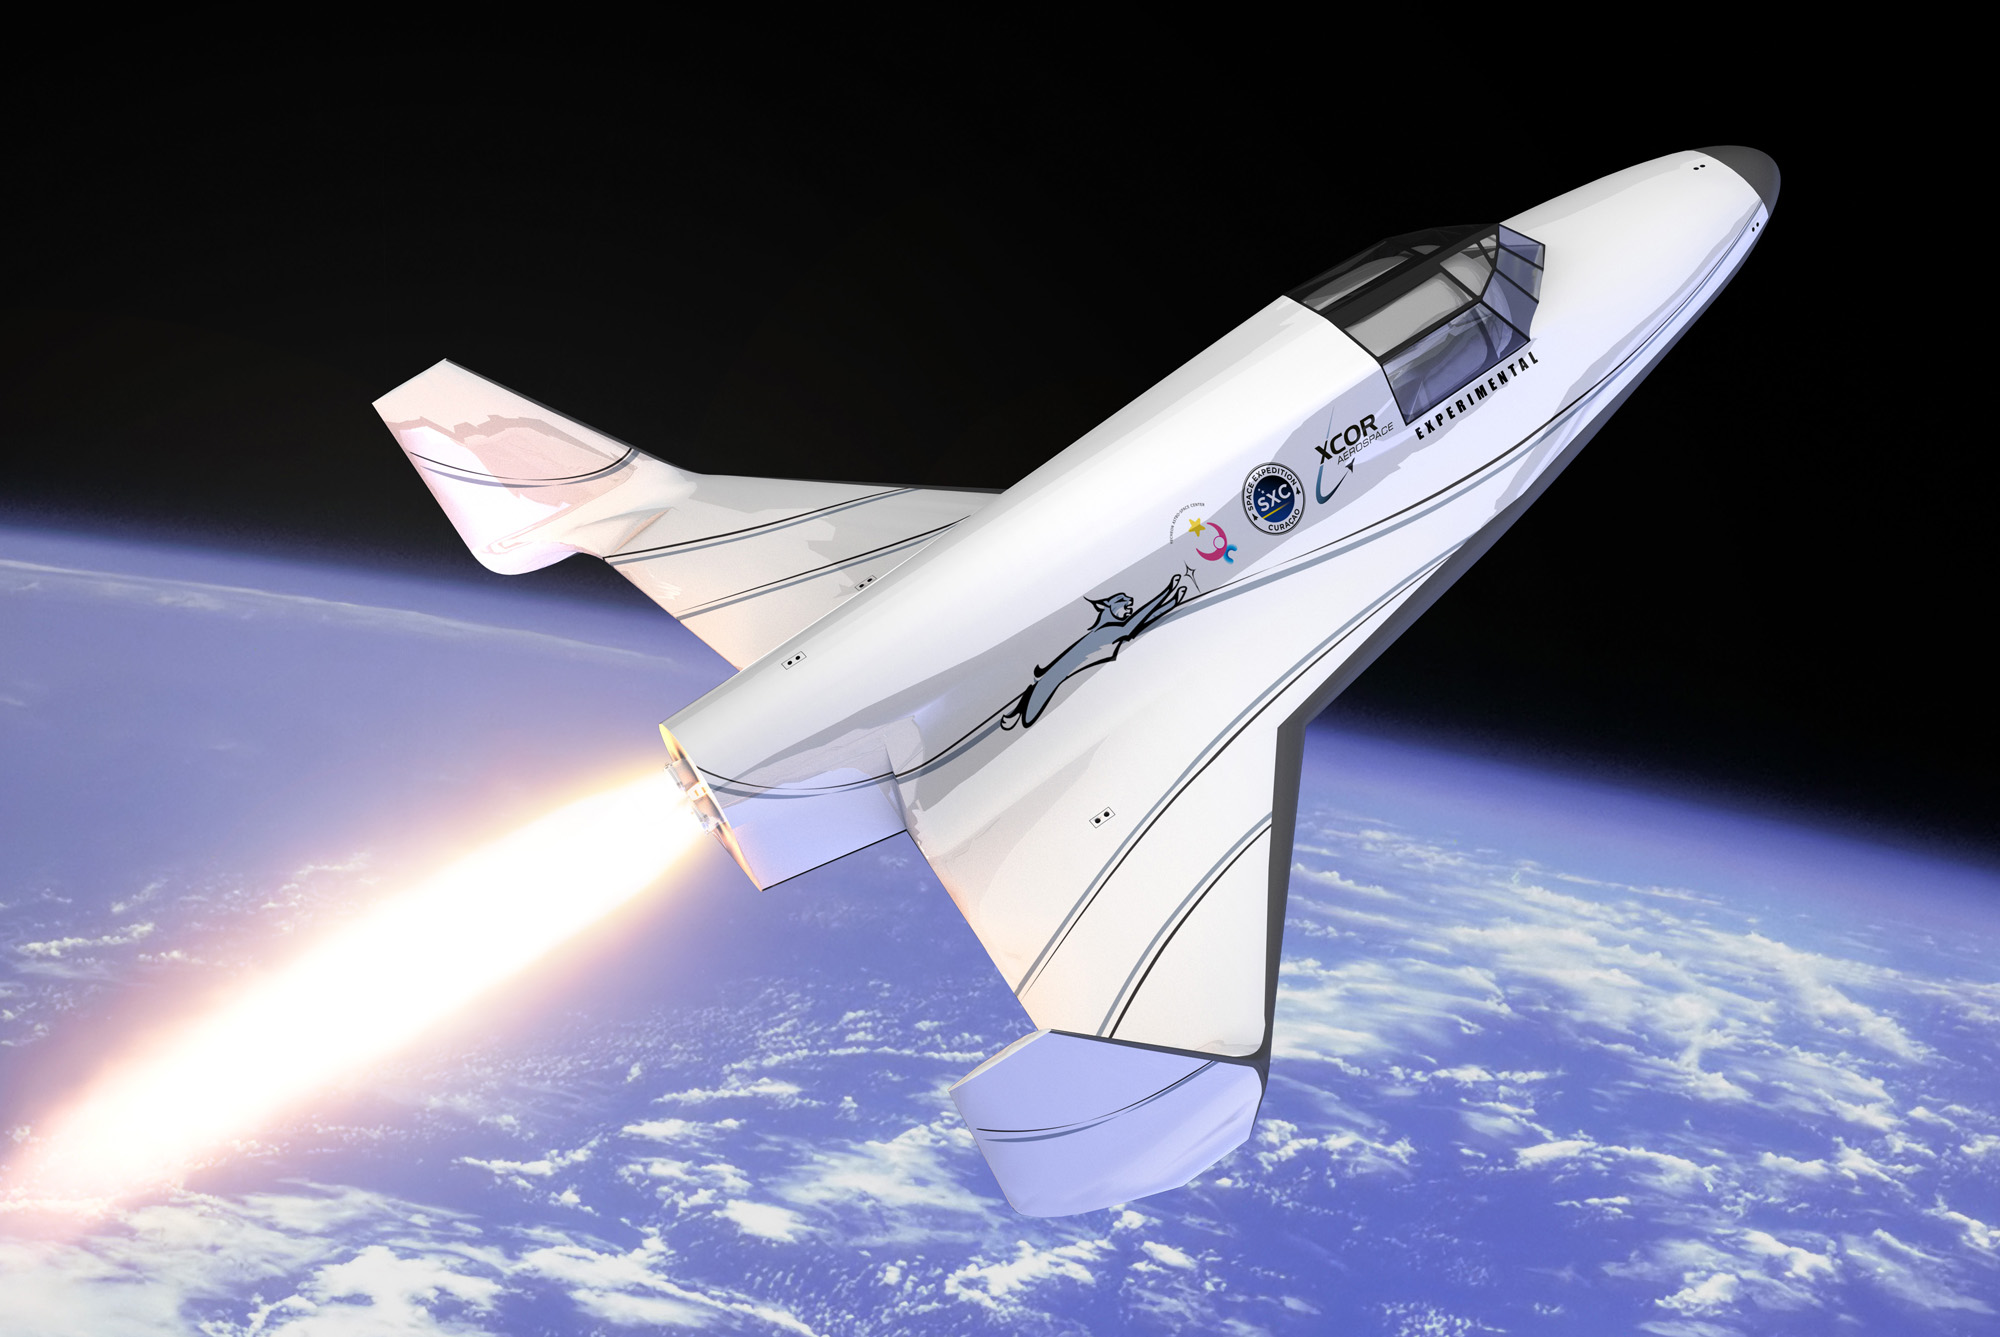 Lynx Space Plane: Launch View